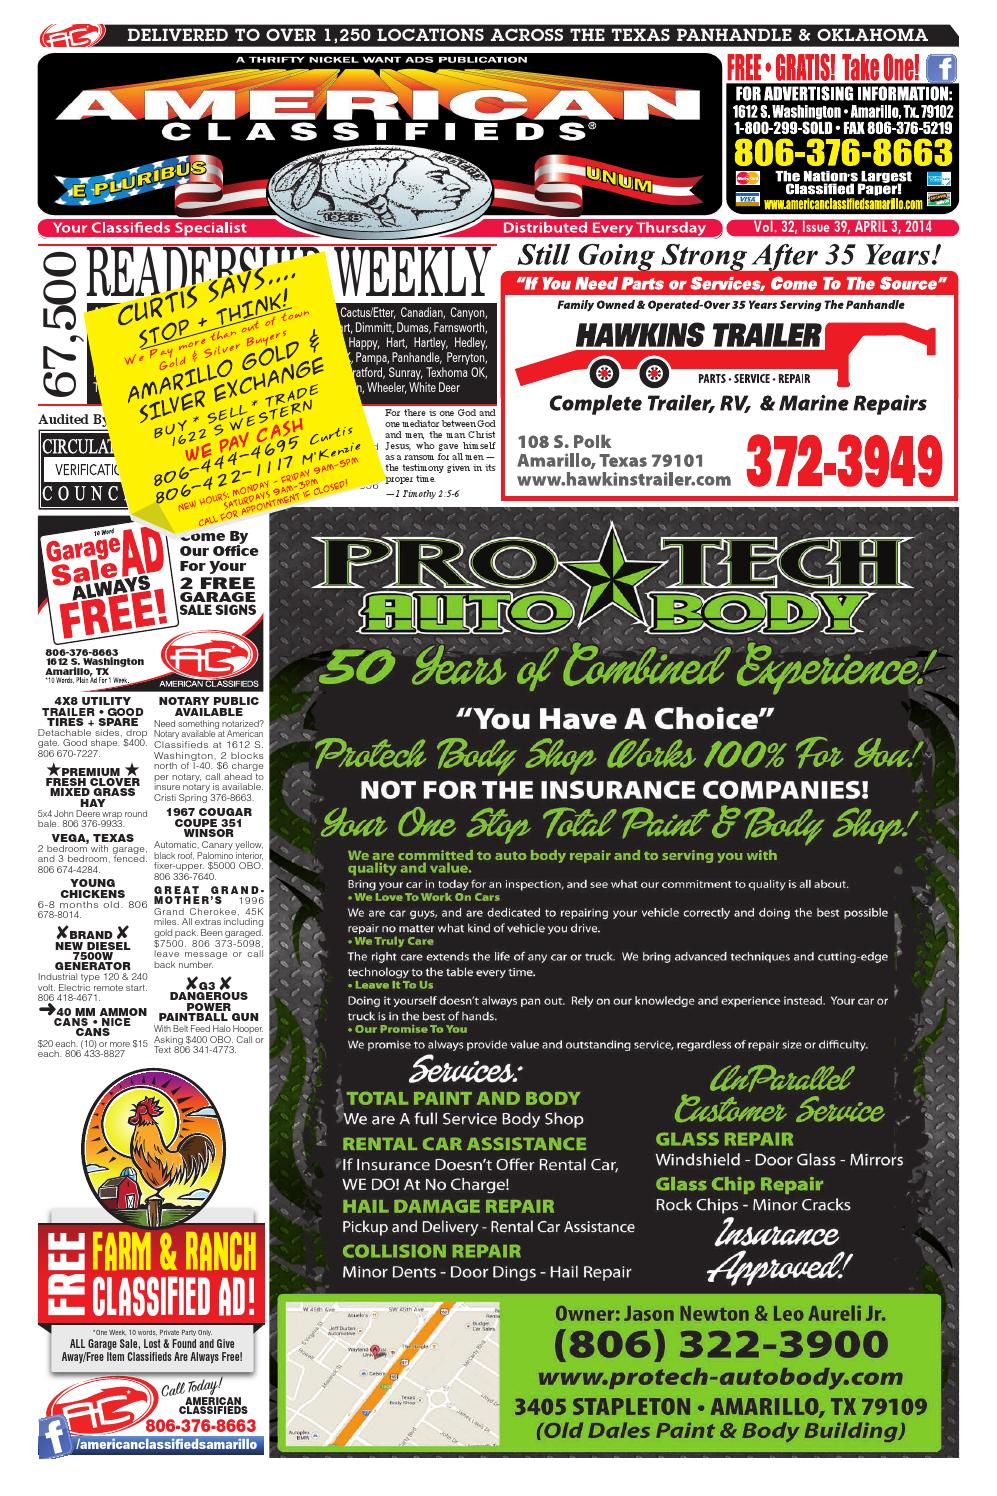 American Classifieds | Amarillo, TX | April 3, 2014 by